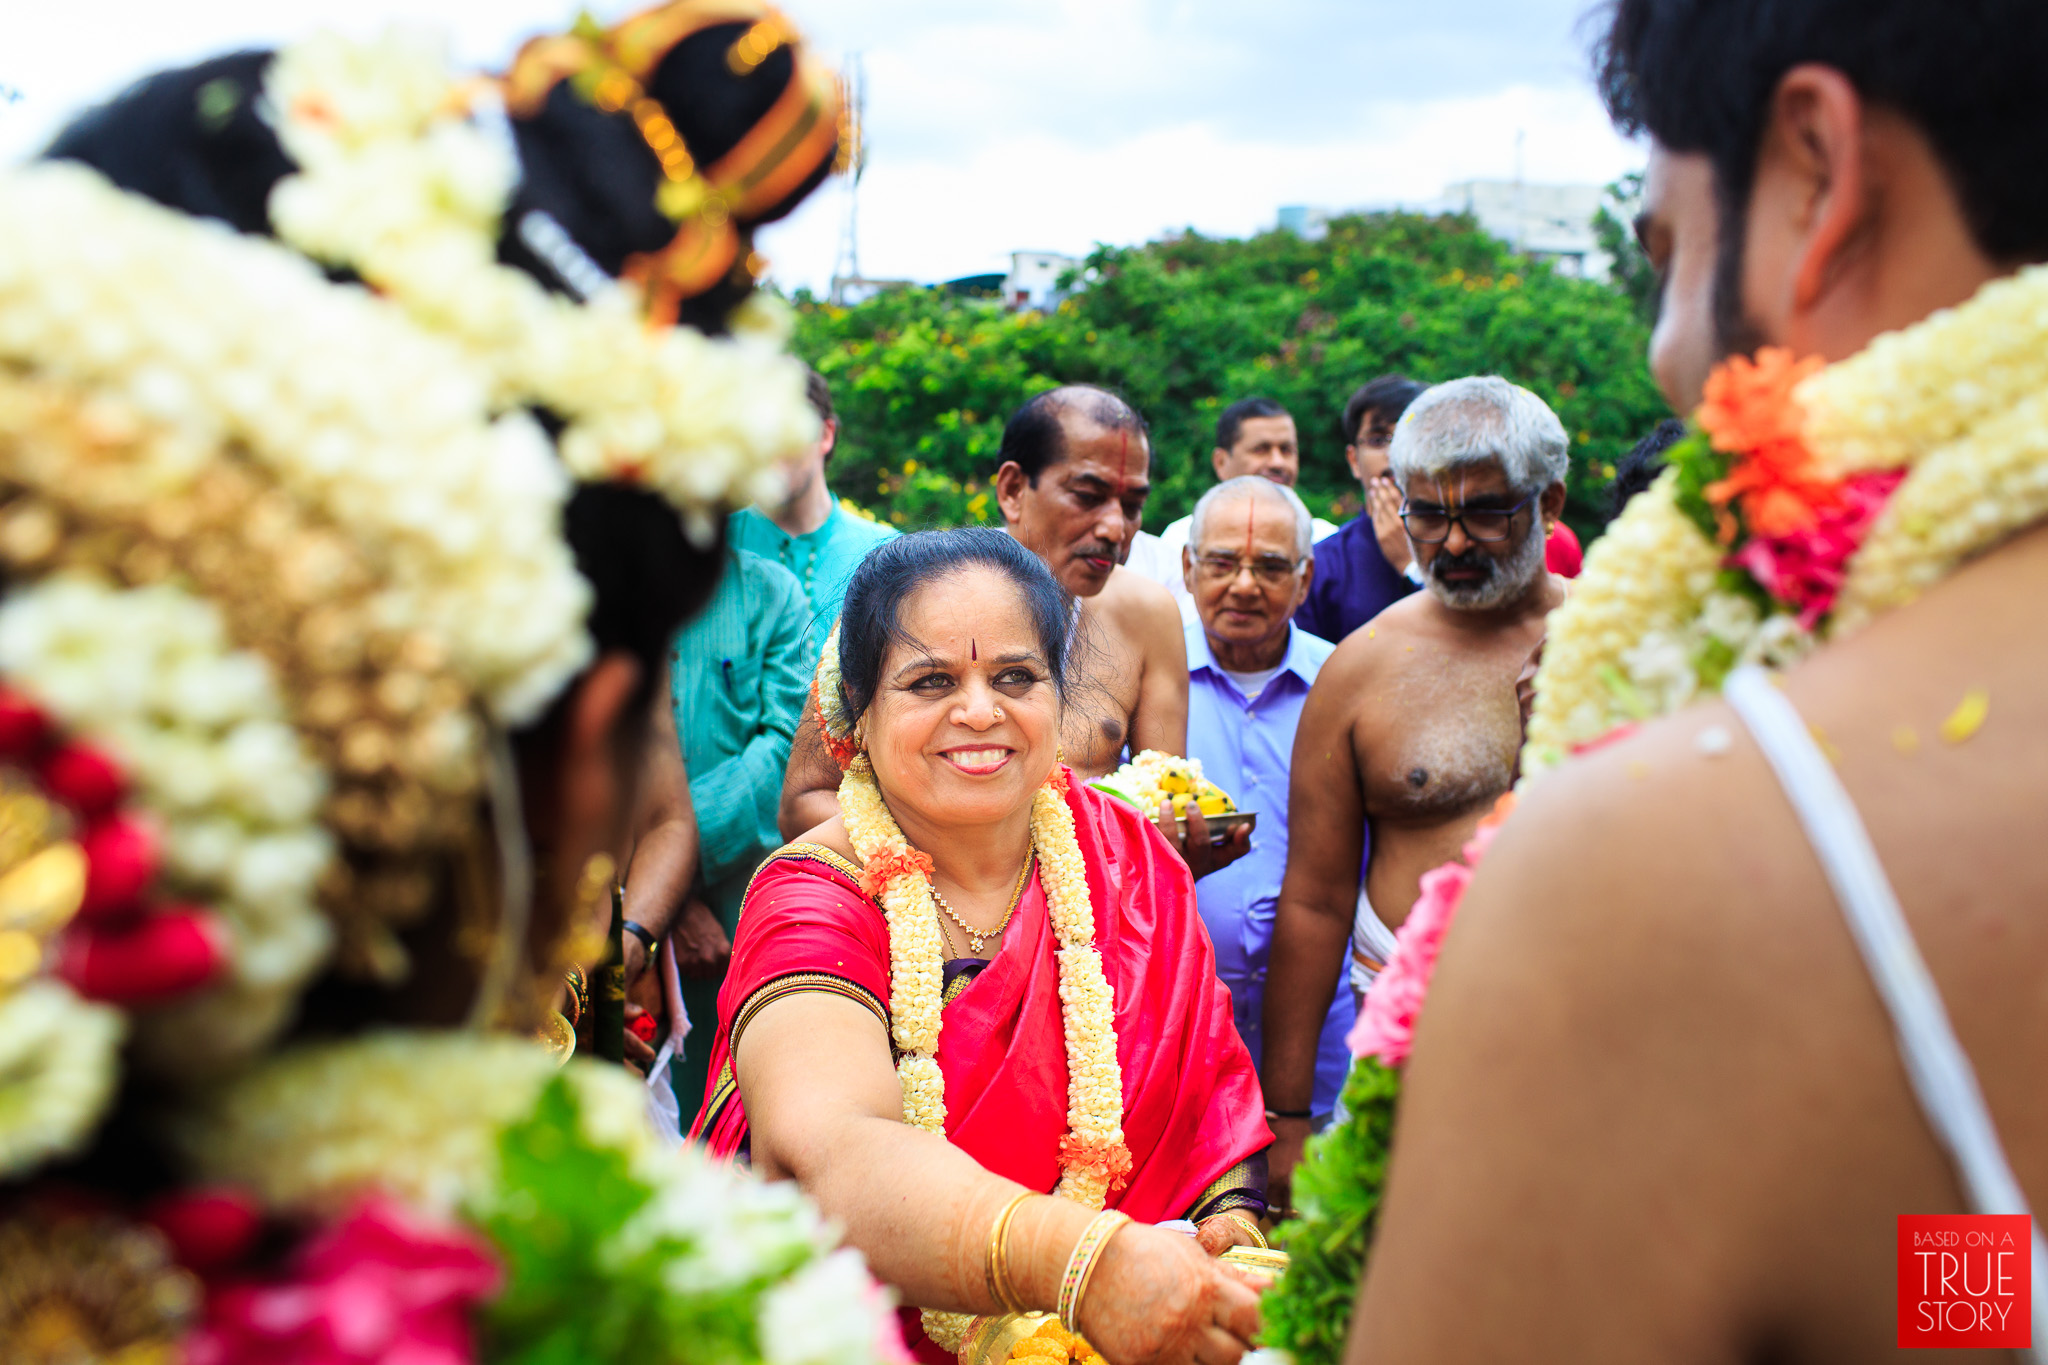 Tambrahm-Candid-Wedding-Photographers-Bangalore-0053.jpg